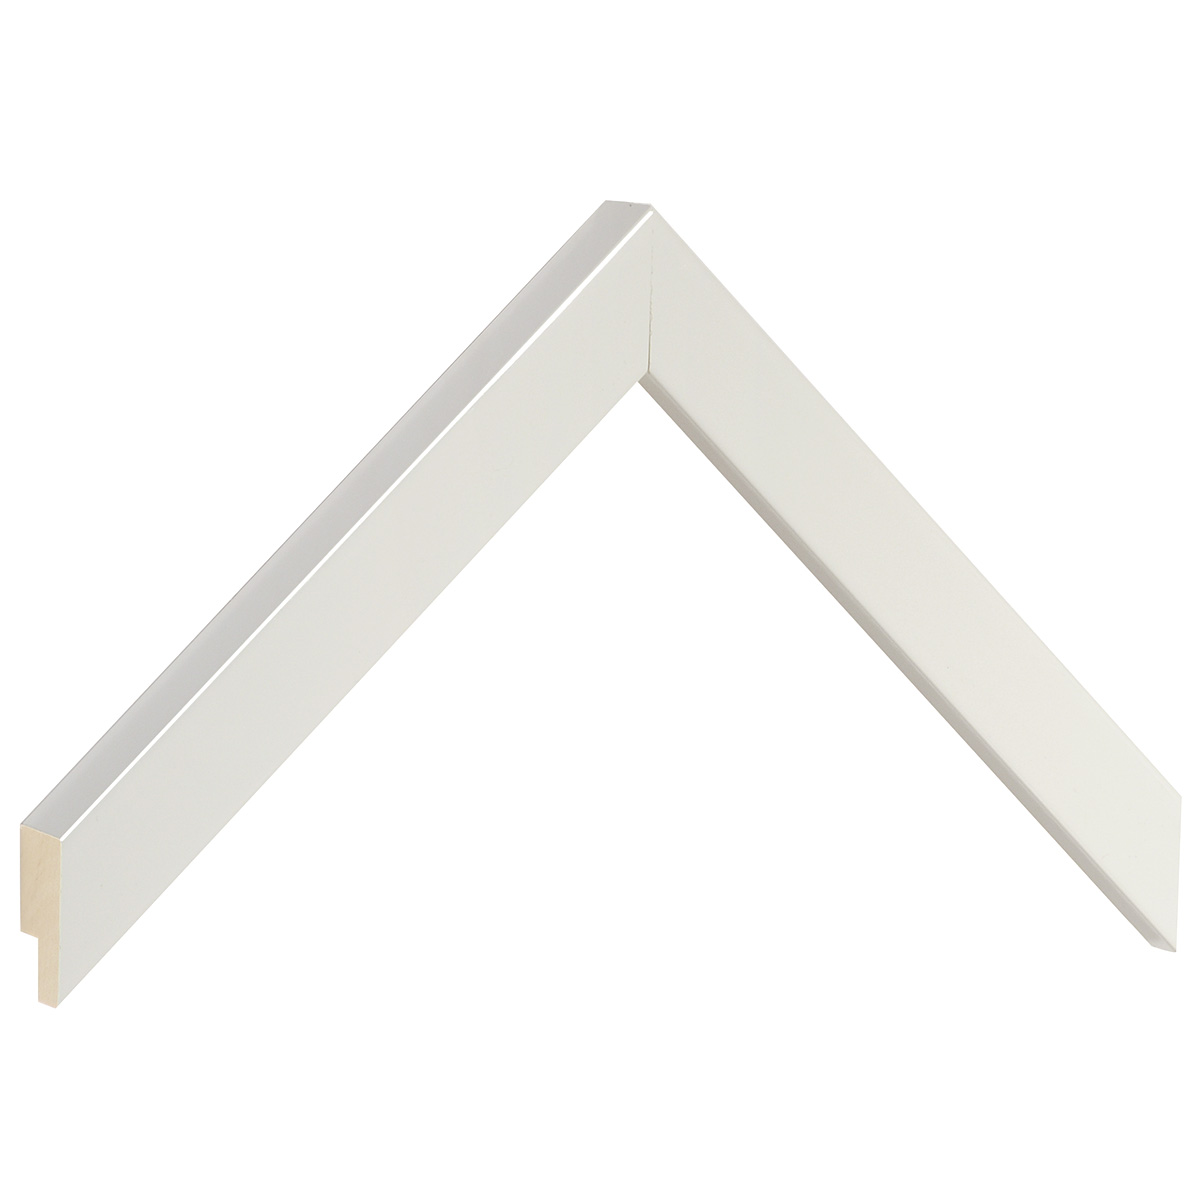 Moulding ayous, width 20mm height 20 - Glossy White